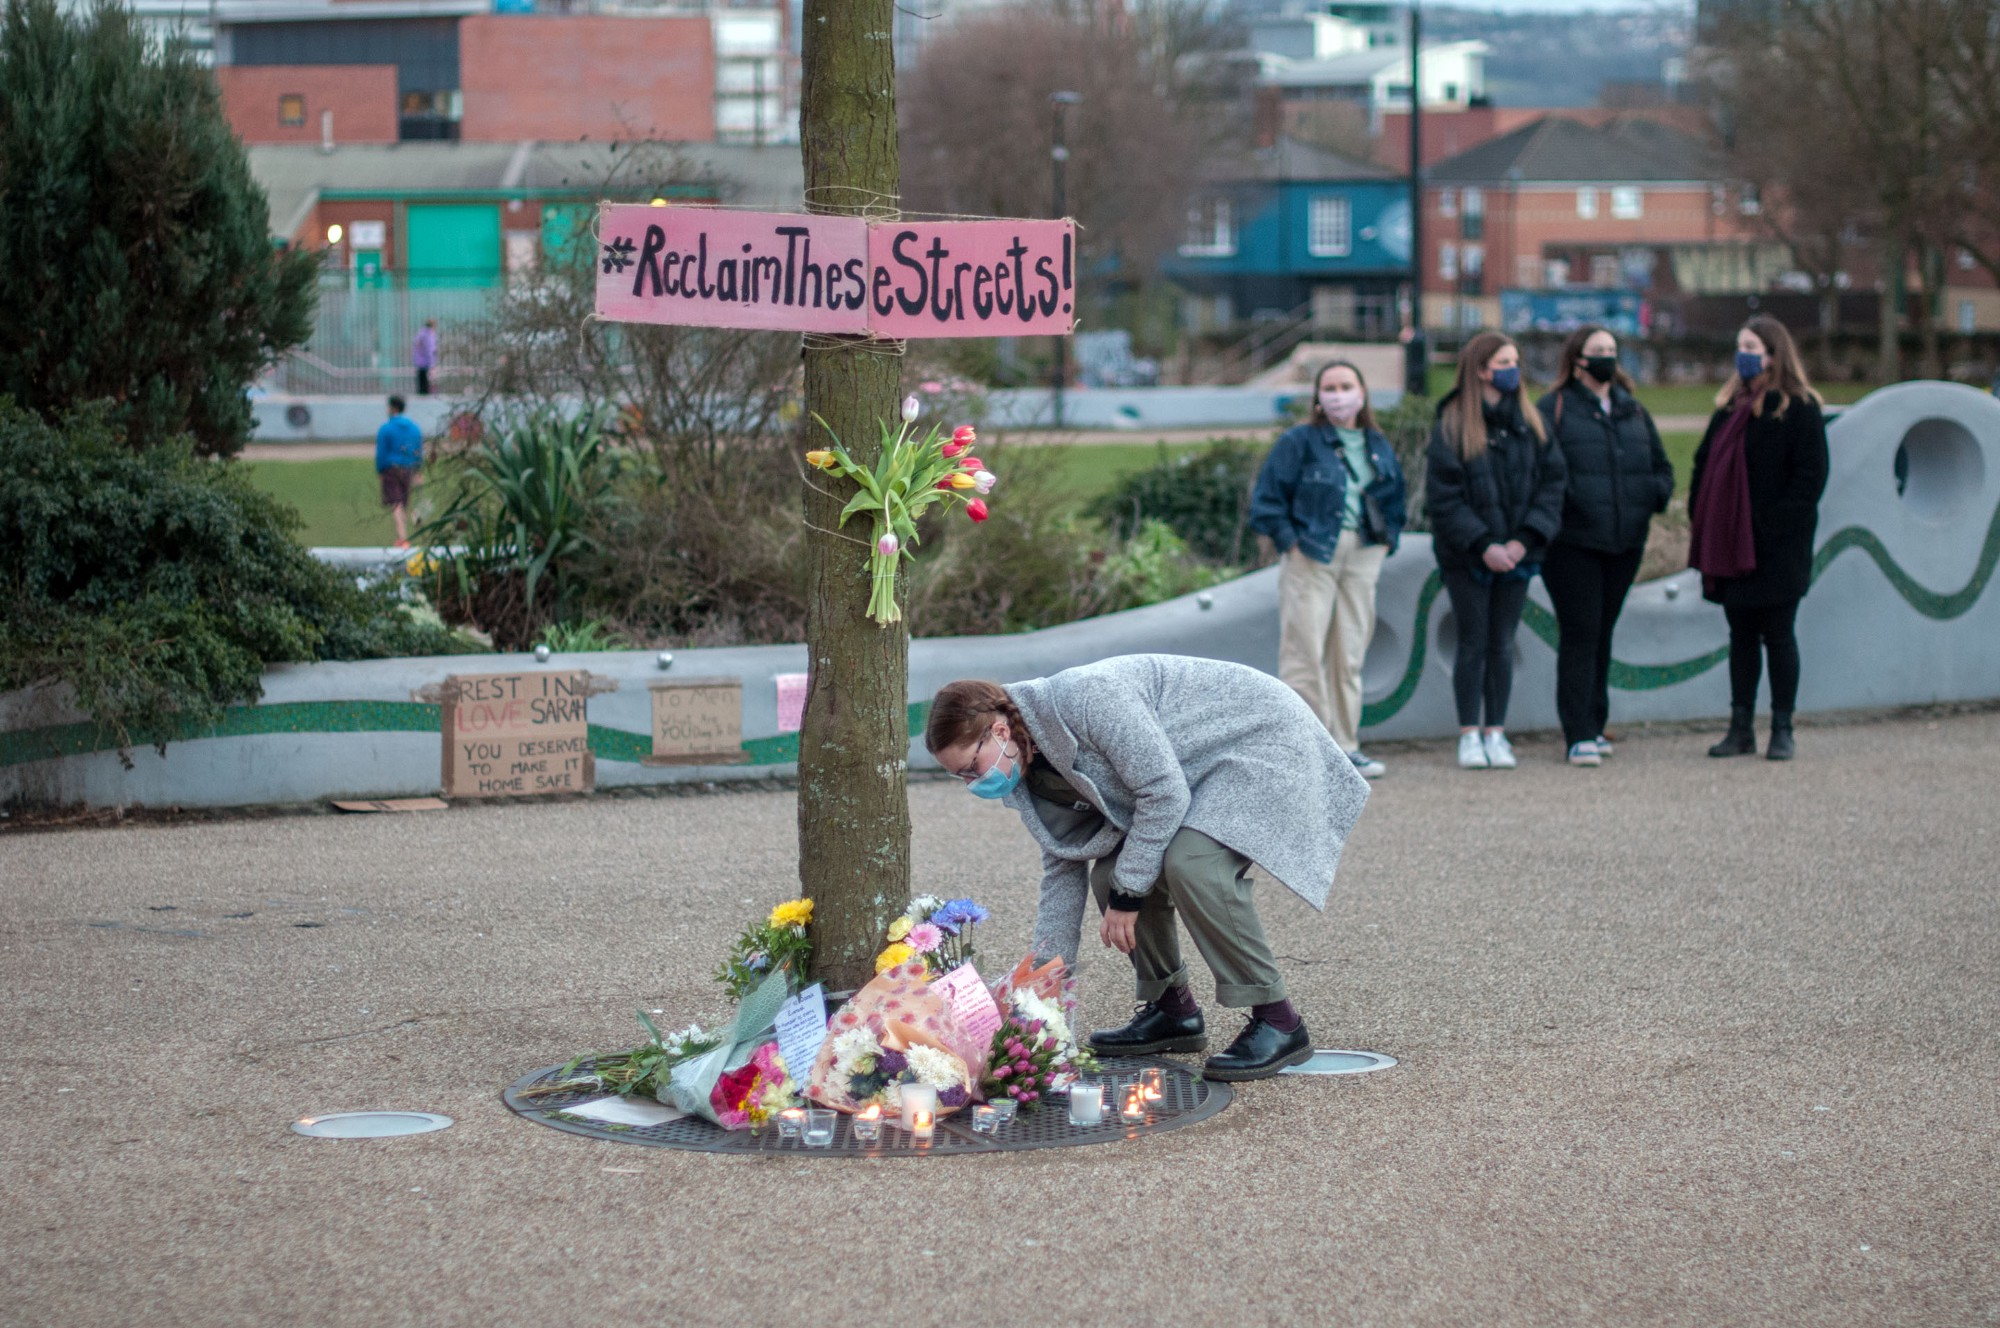 Flowers being laid at a vigil for Sarah Everard in Sheffield.